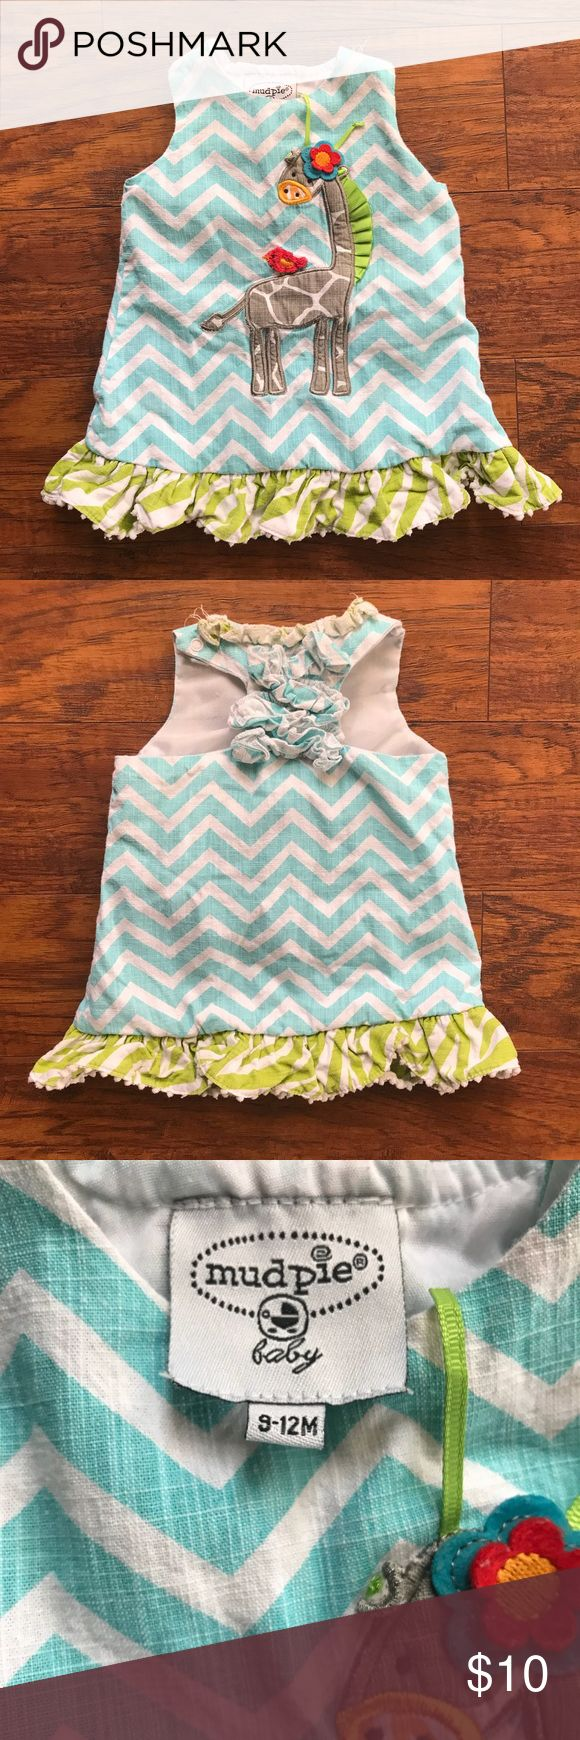 Mud Pie dress Giraffe print dress in good condition l. Loved his dress on my little one! Dress tag says 9-12 but fit my little girl from about 3-6 Months. Mud Pie Dresses Casual